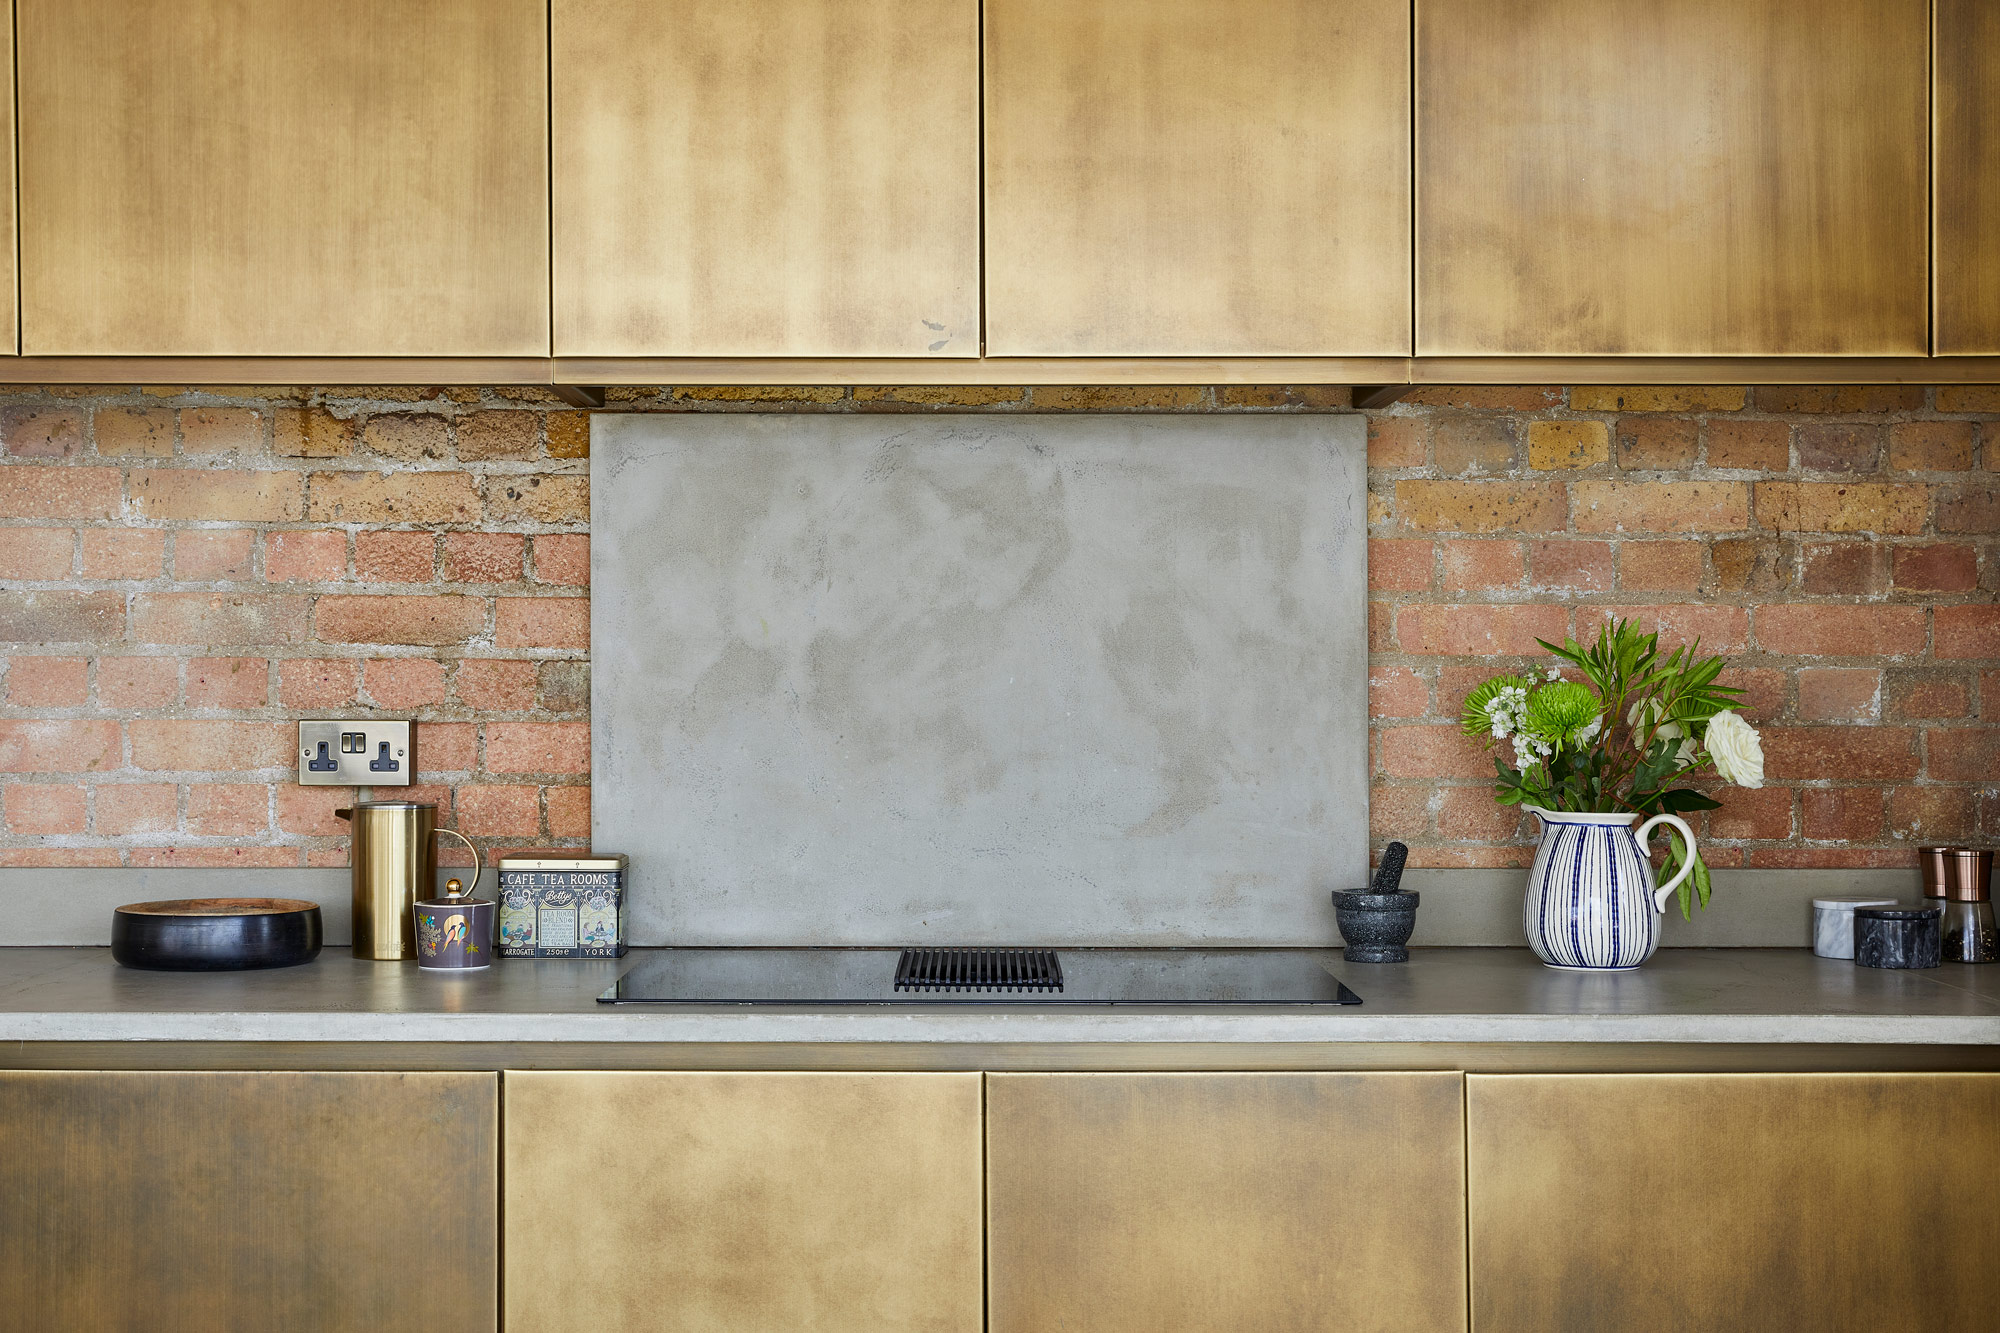 Brass metal kitchen cabinets with concrete countertops and backsplash